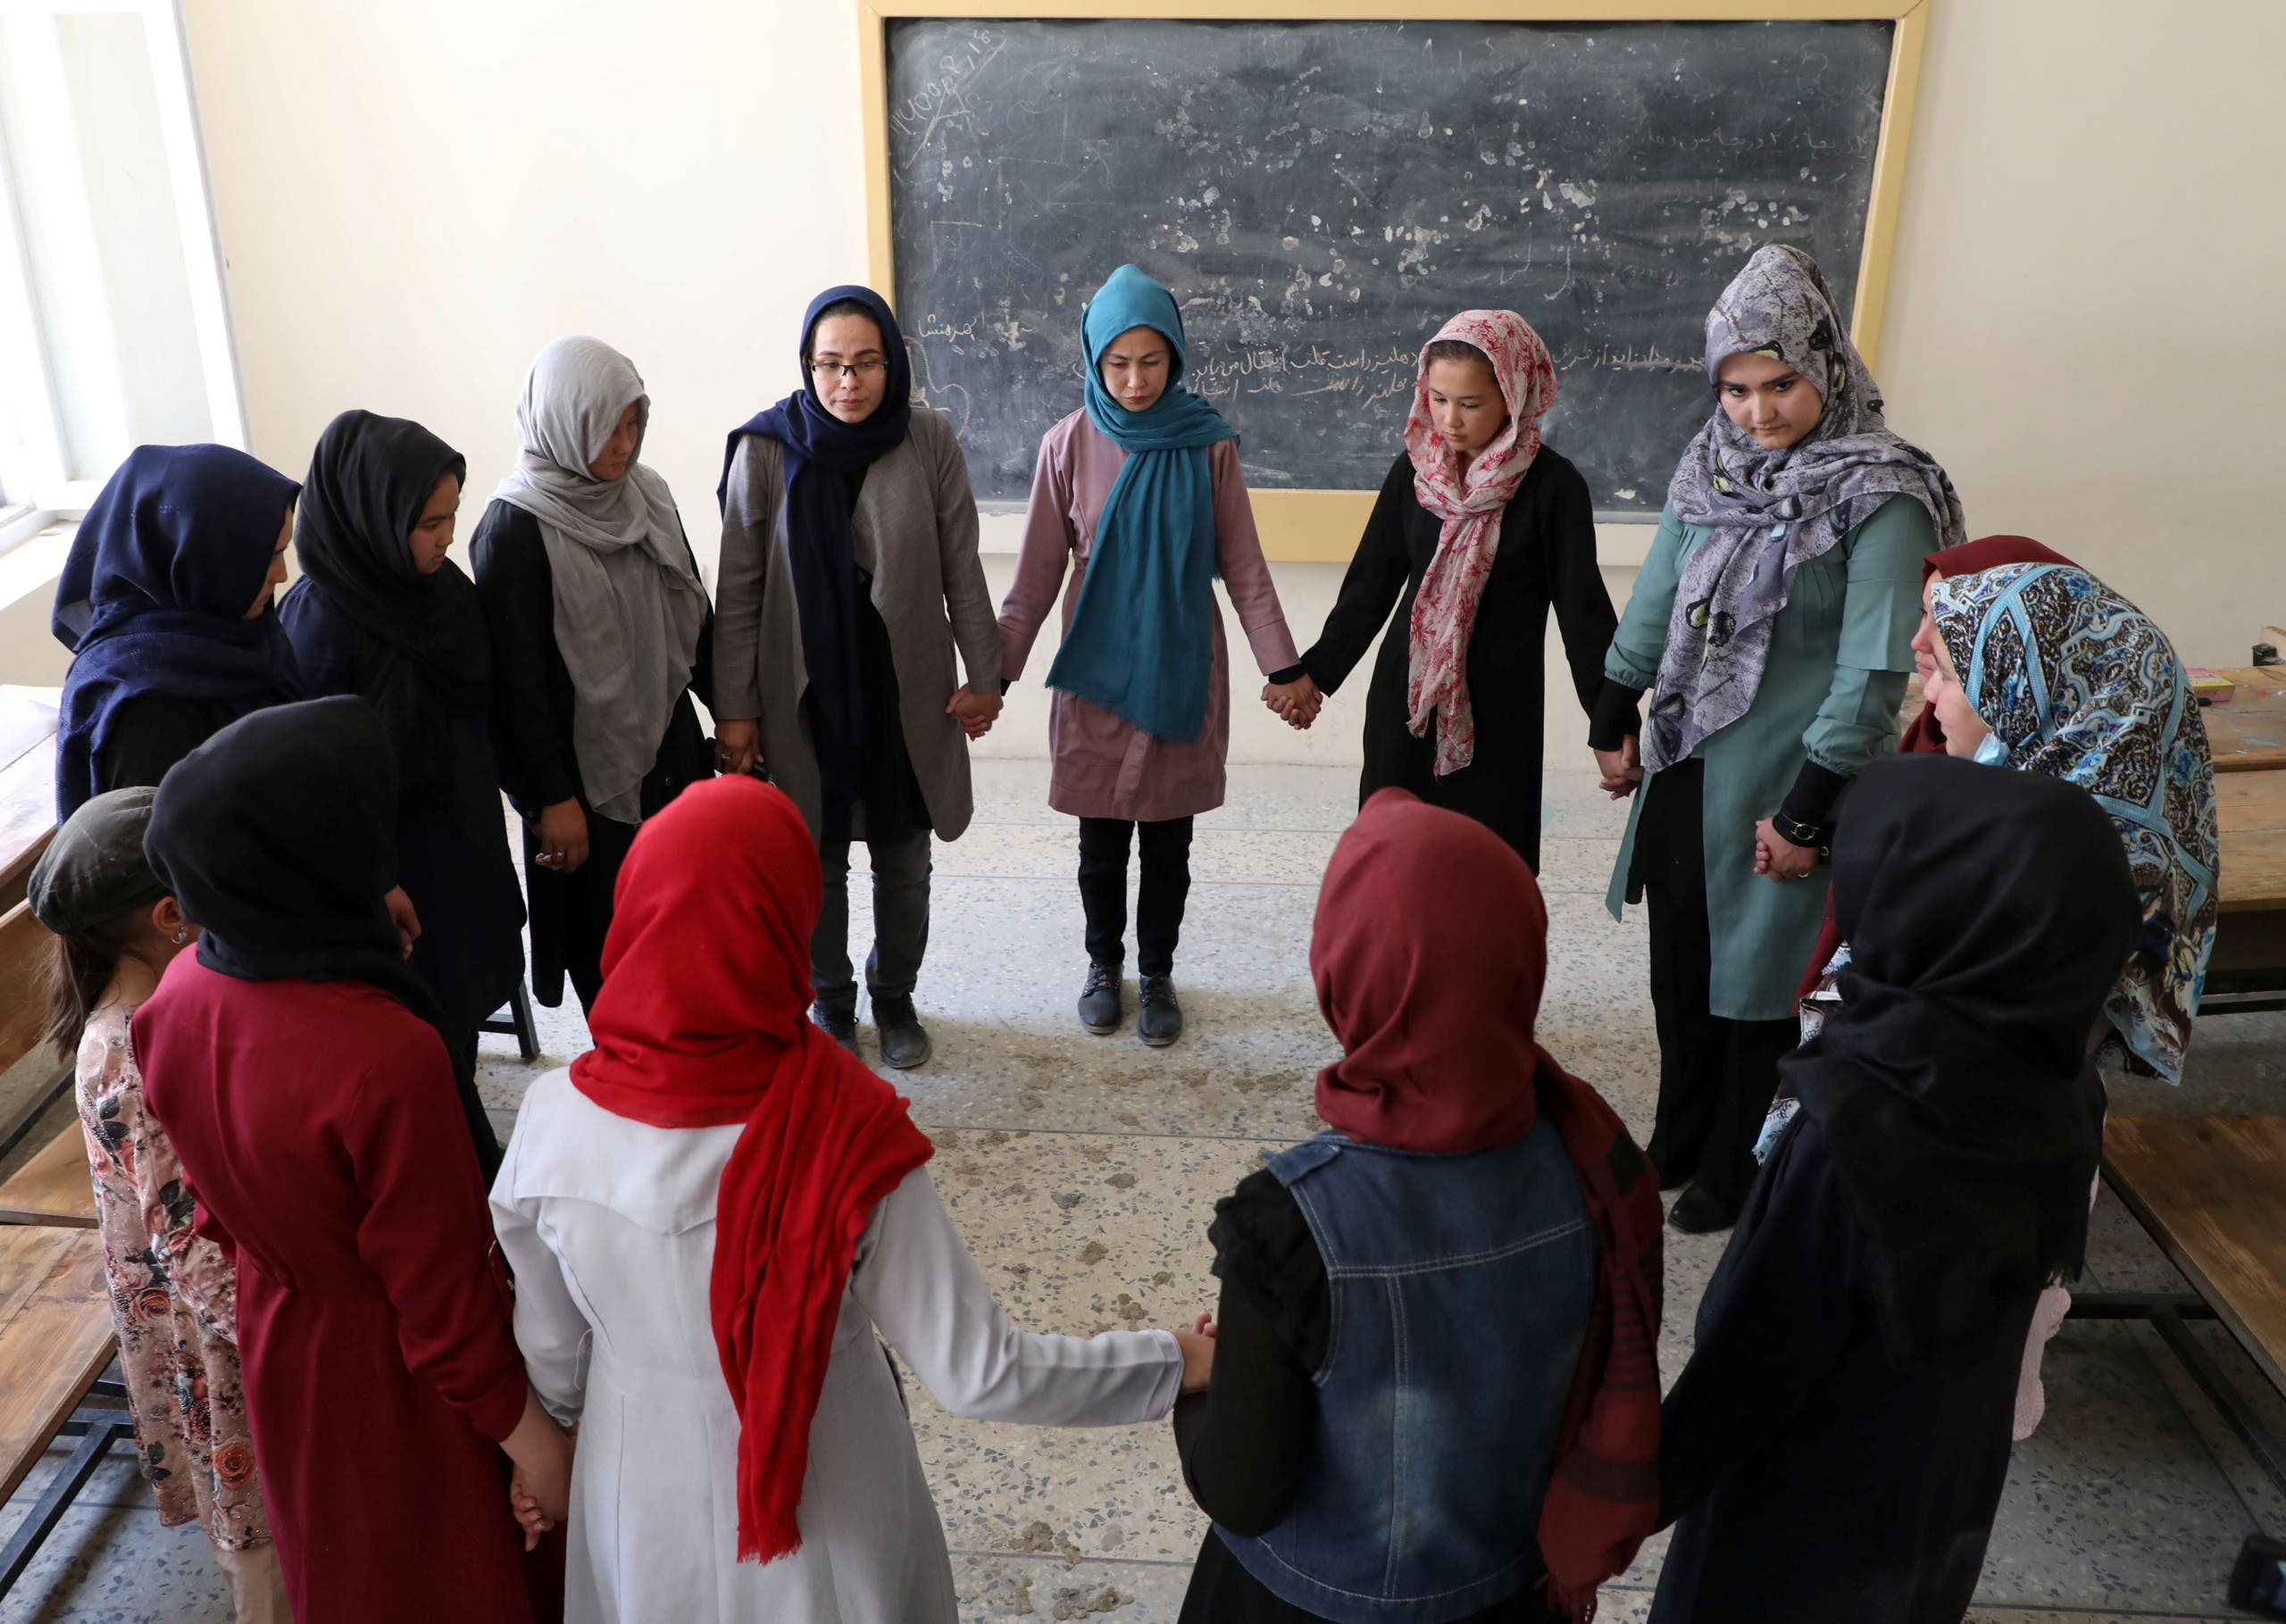 Fatima Noori, 15, (C) and other schoolgirls attend psychotherapy class after a massive bomb exploded outside their school, that killed at least 80 students in Kabul, Afghanistan May 26, 2021. (Reuters)